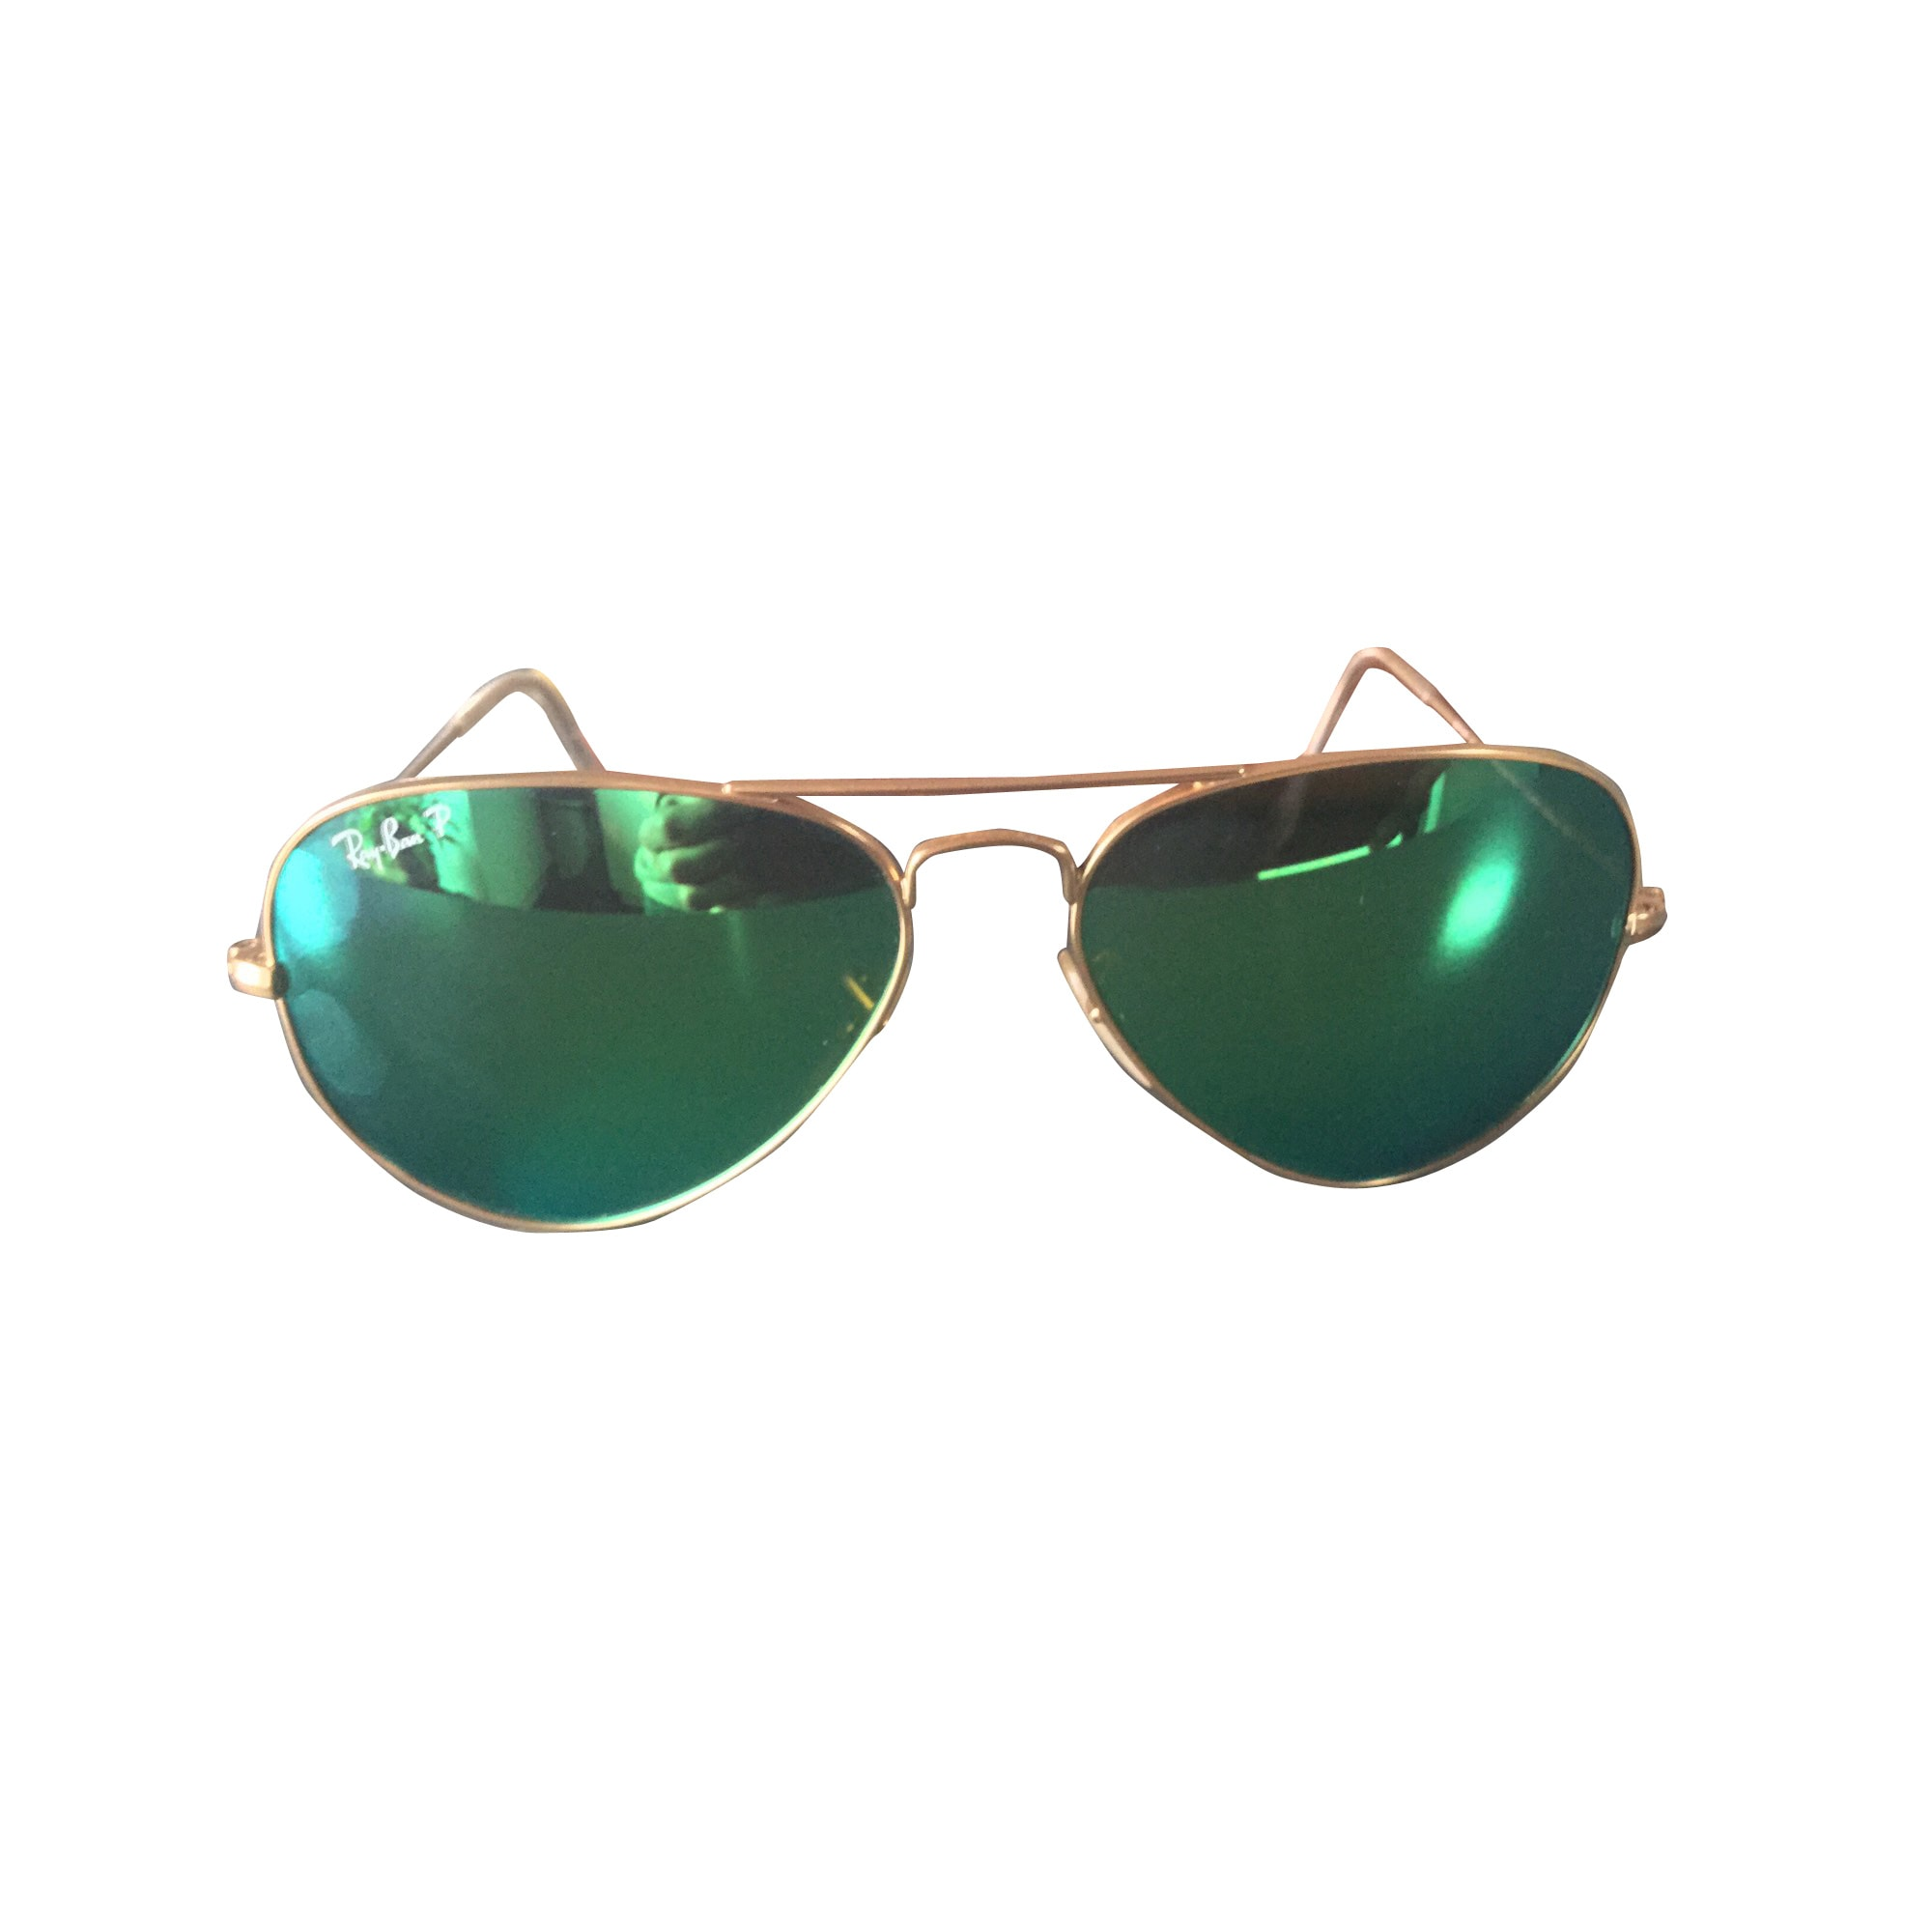 Sunglasses RAY-BAN Green